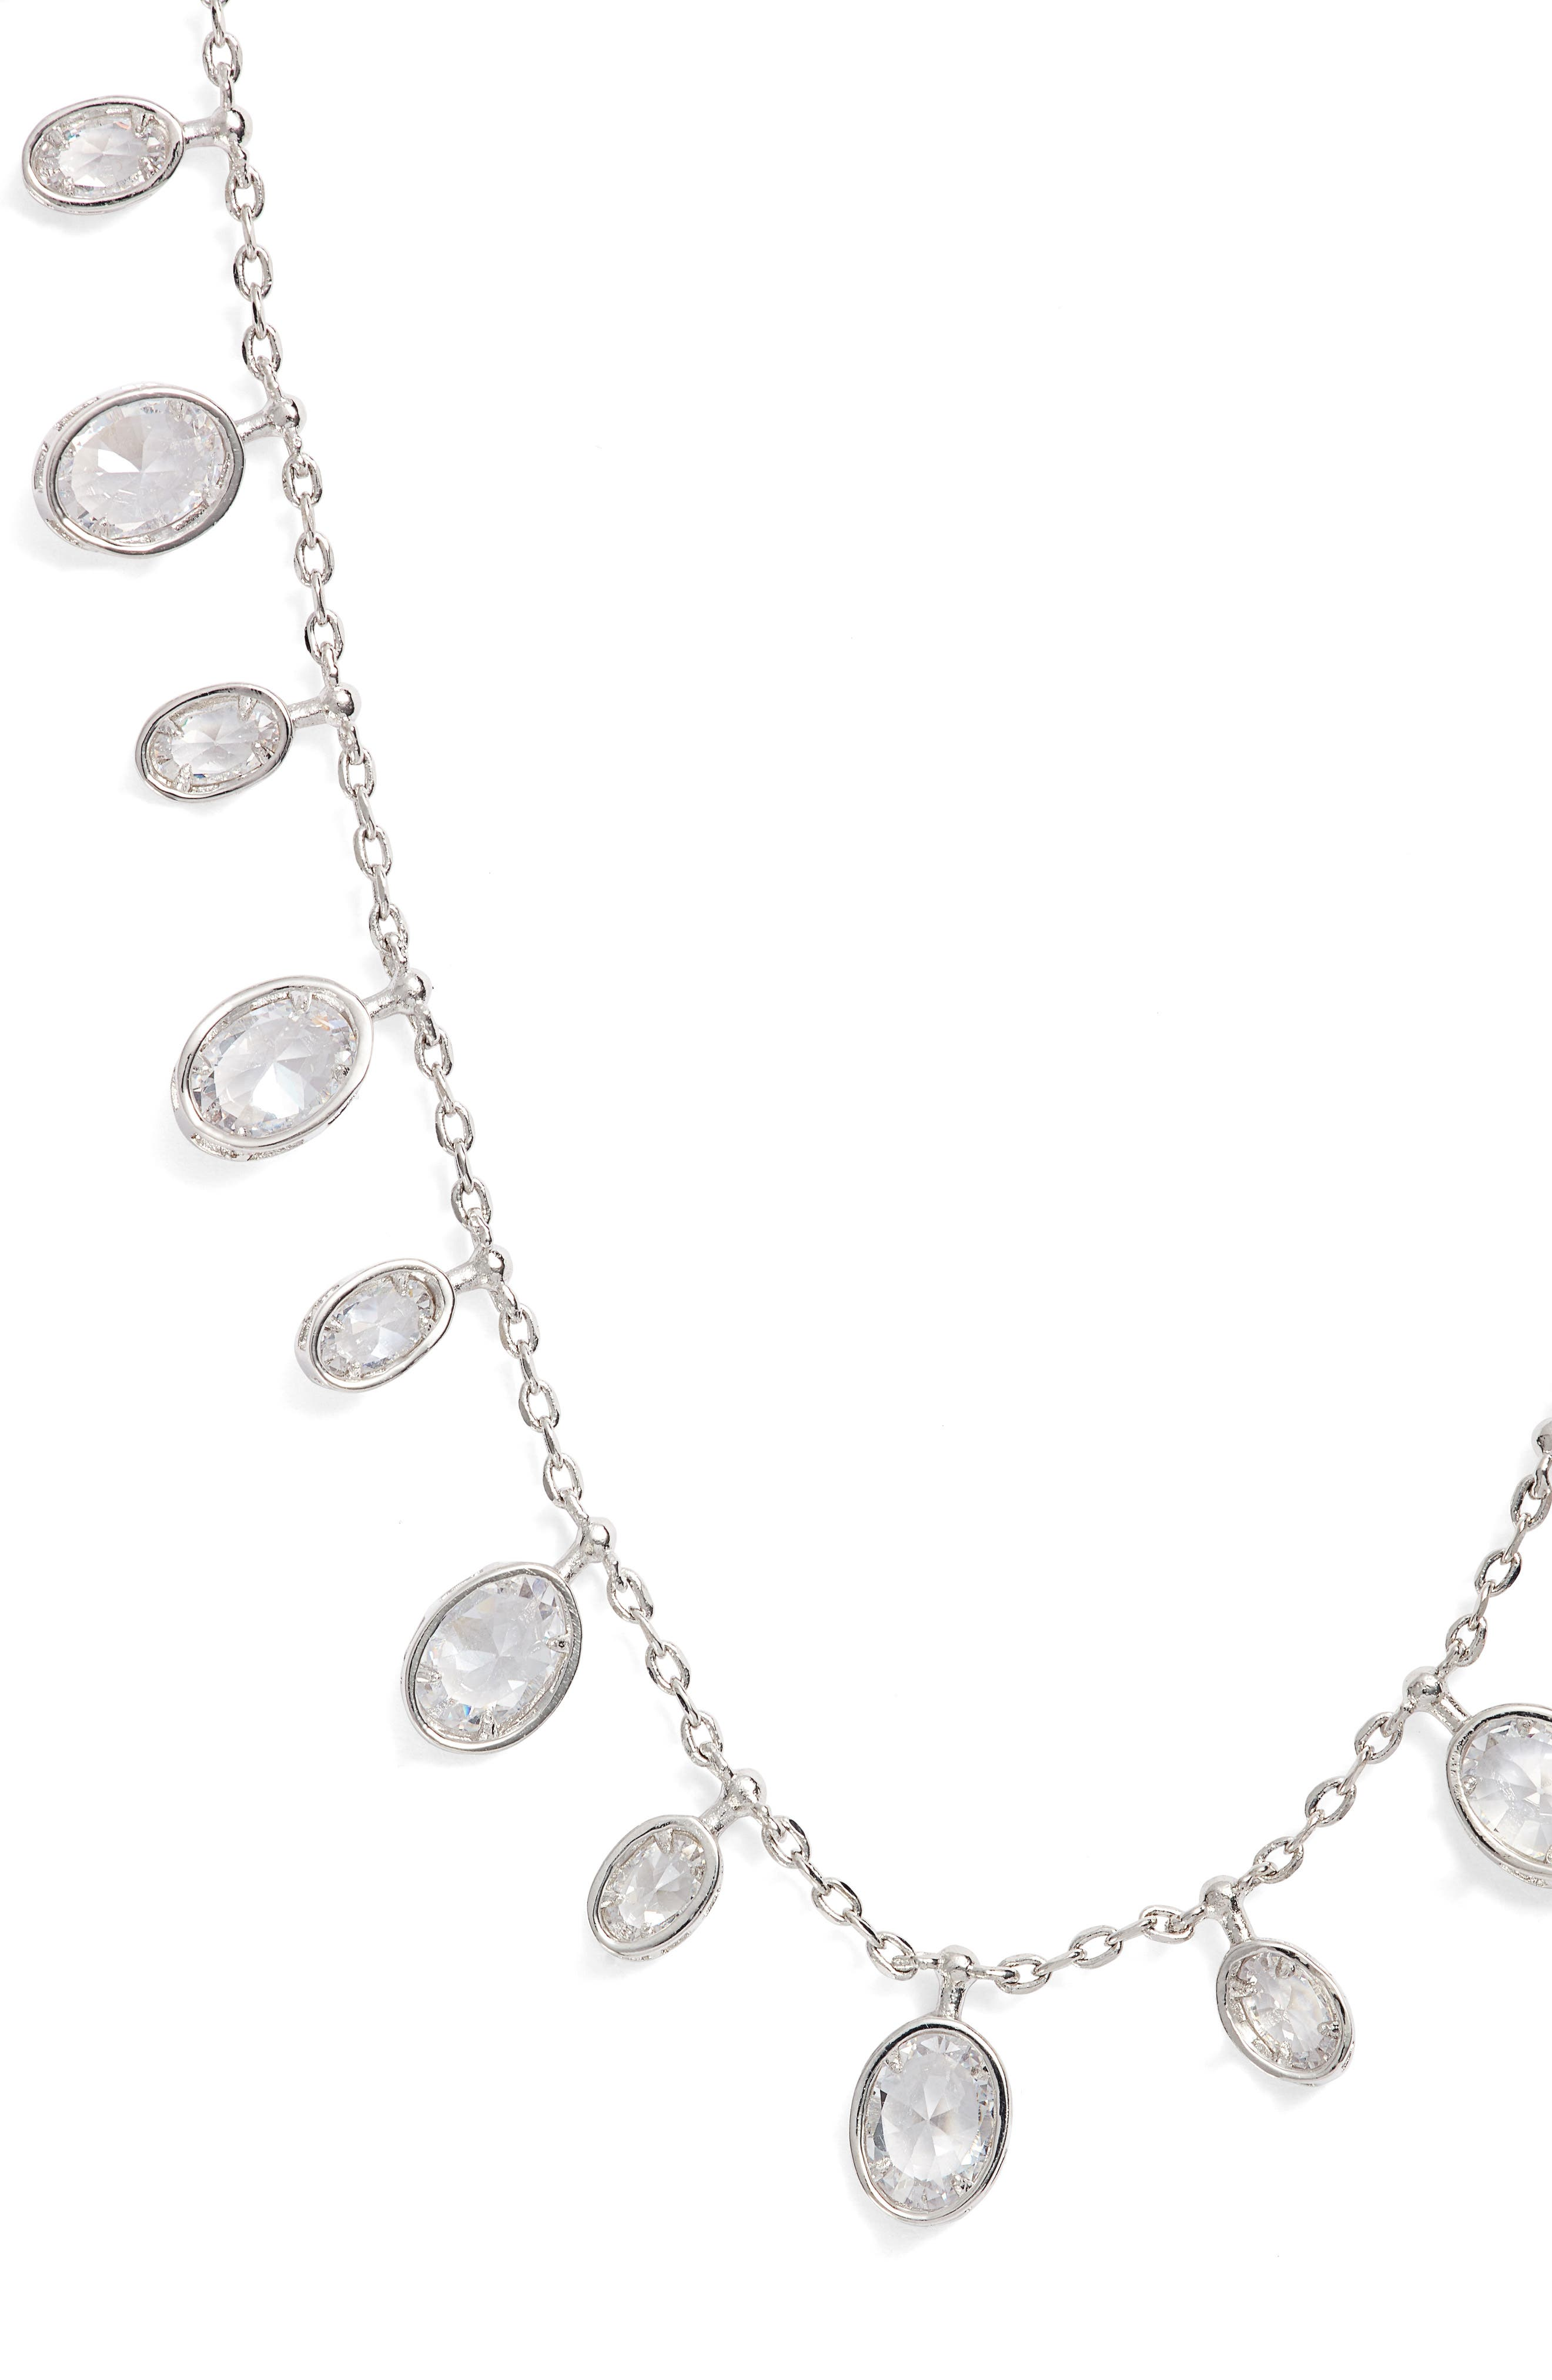 Tracey Cubic Zirconia Collar Necklace,                             Main thumbnail 1, color,                             041